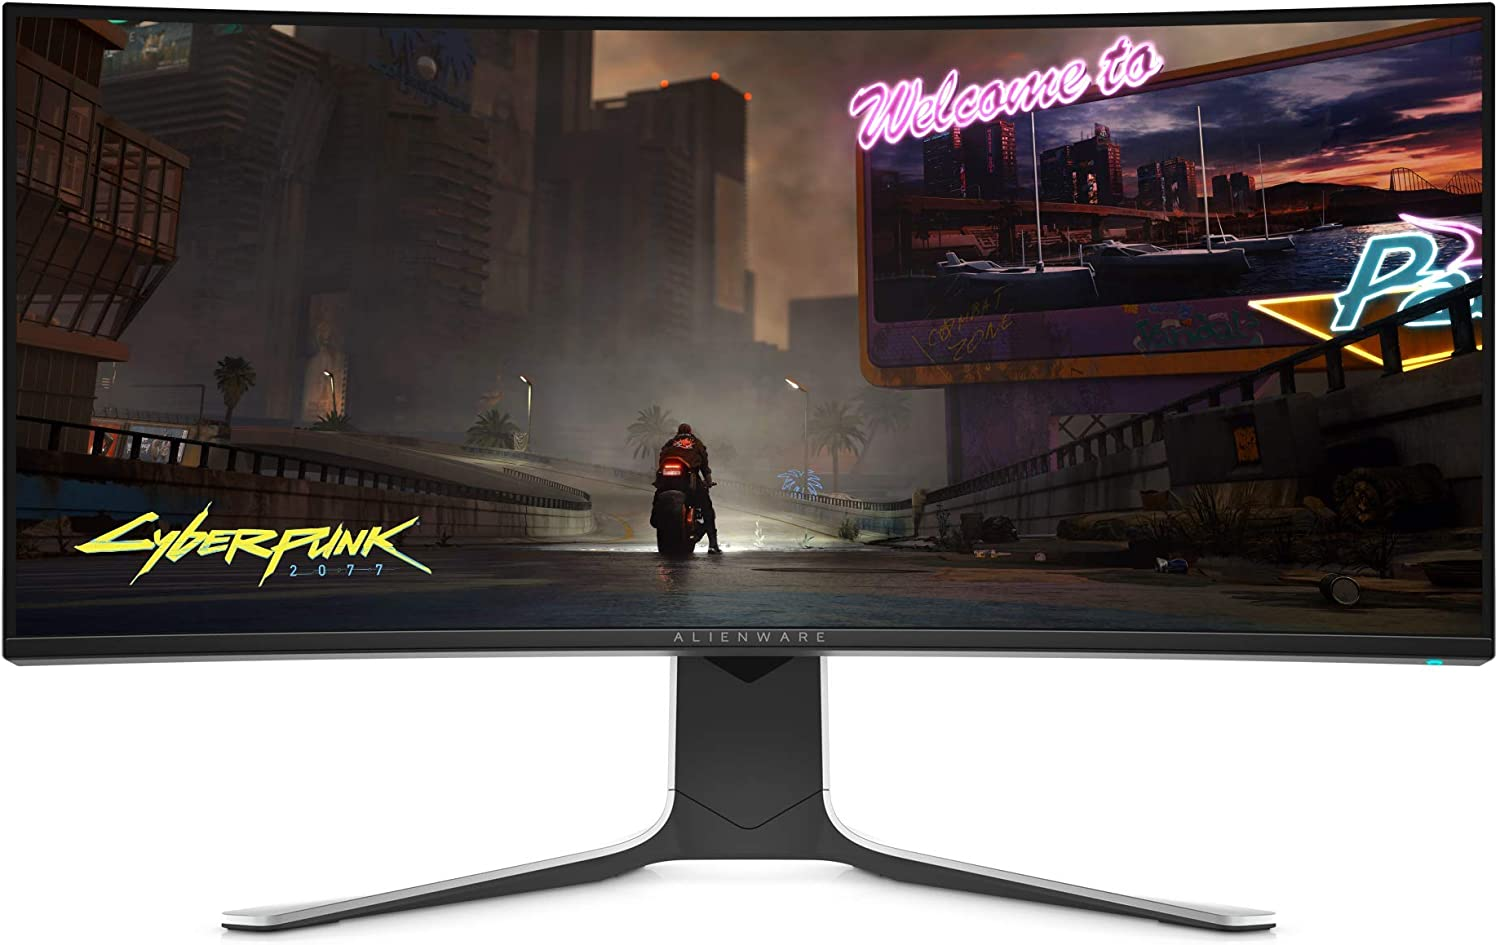 Alienware NEW Curved 34 Inch WQHD 3440 X 1440 120Hz, NVIDIA G-SYNC, IPS LED Edgelight, Monitor - Lunar Light, AW3420DW (Renewed)